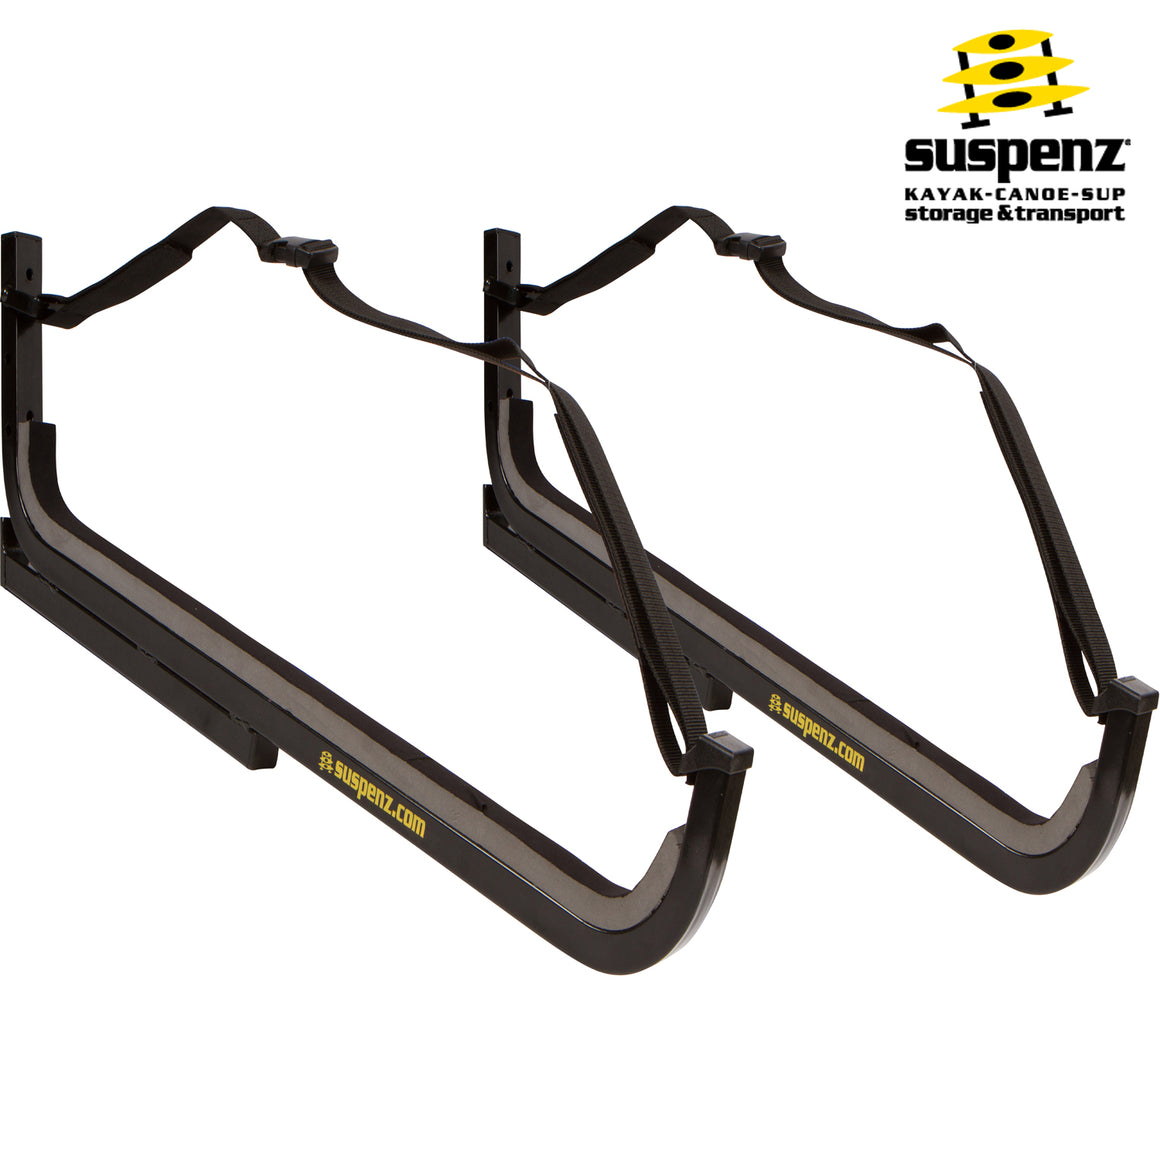 Display Flat Rack SAFETY STRAPS